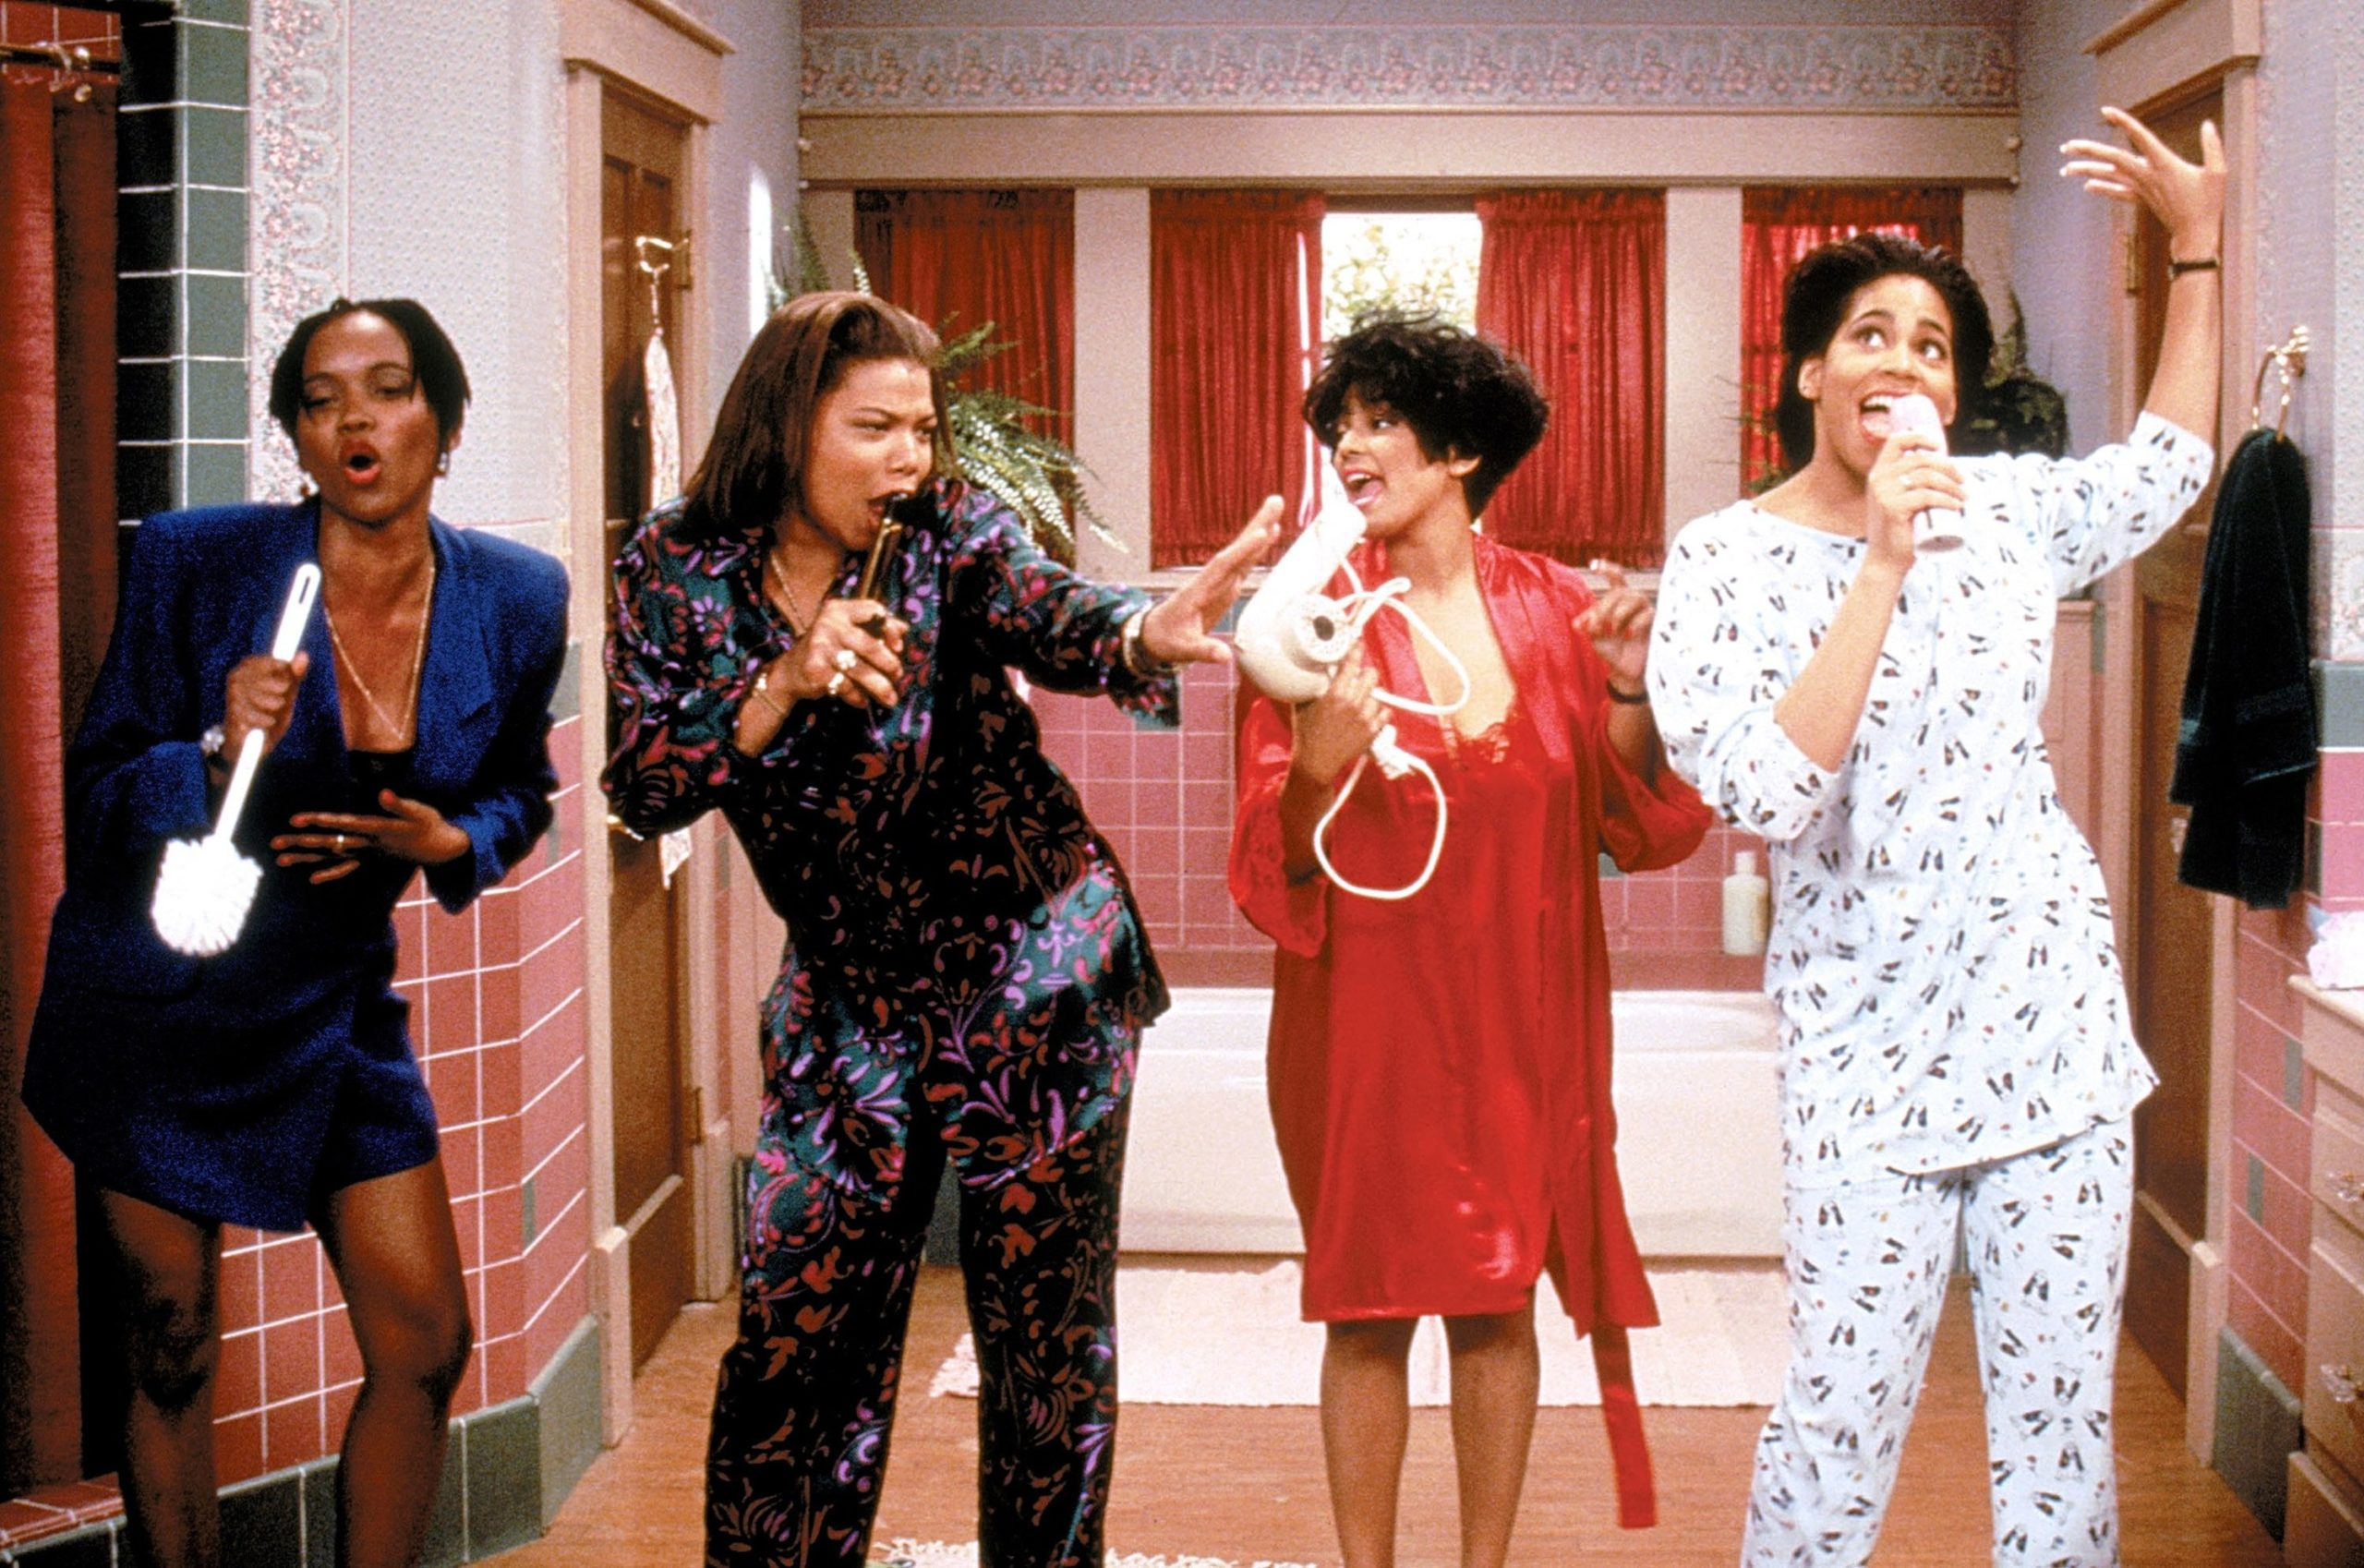 Four Black women circa the early 90's stand together dancing and singing into telephones.